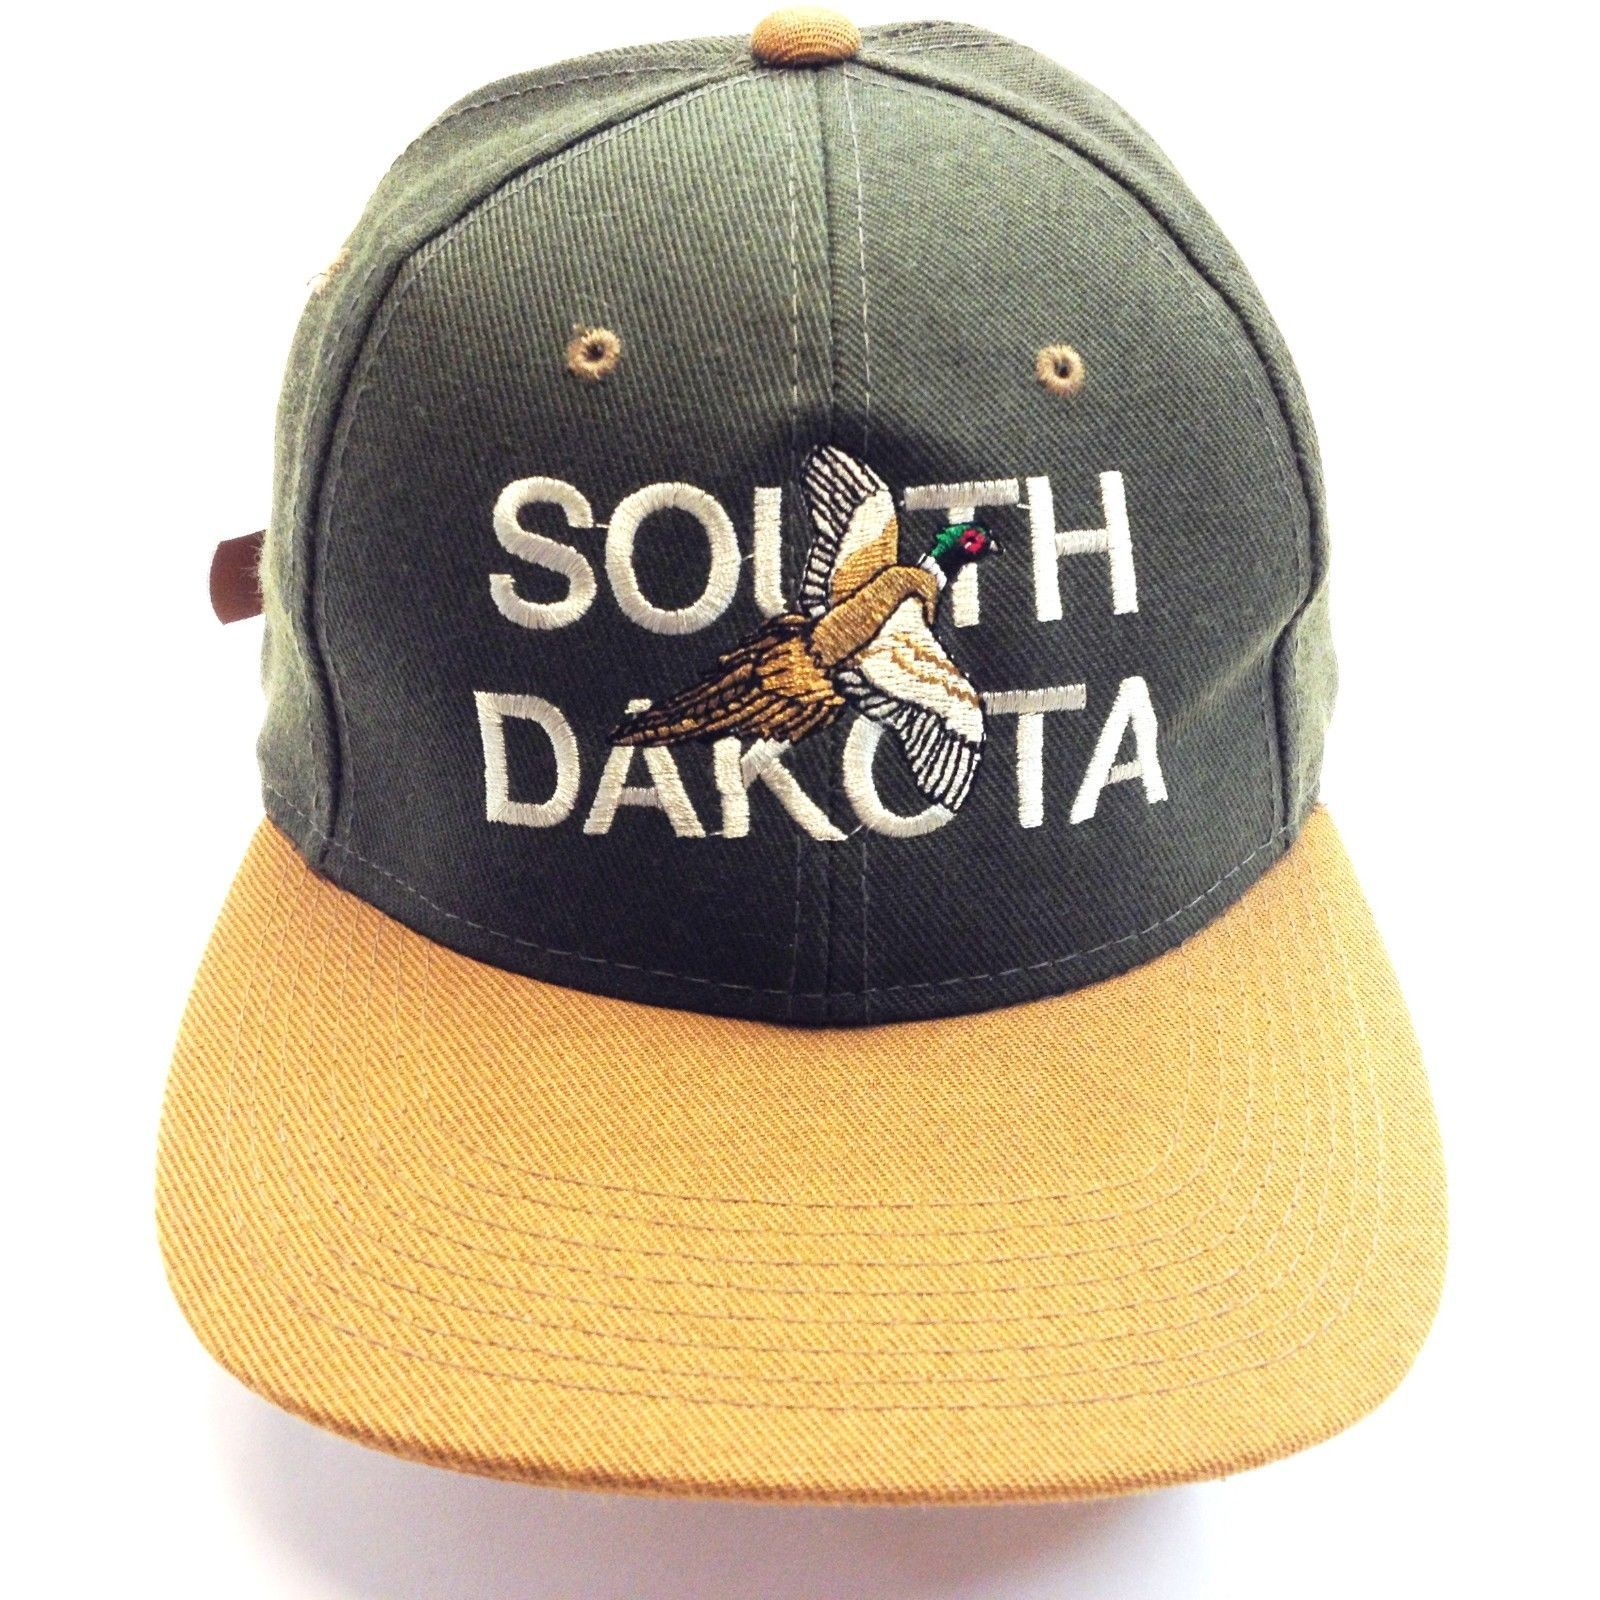 Primary image for SOUTH DACOTA BASEBALL CAP GREEN/BROWN